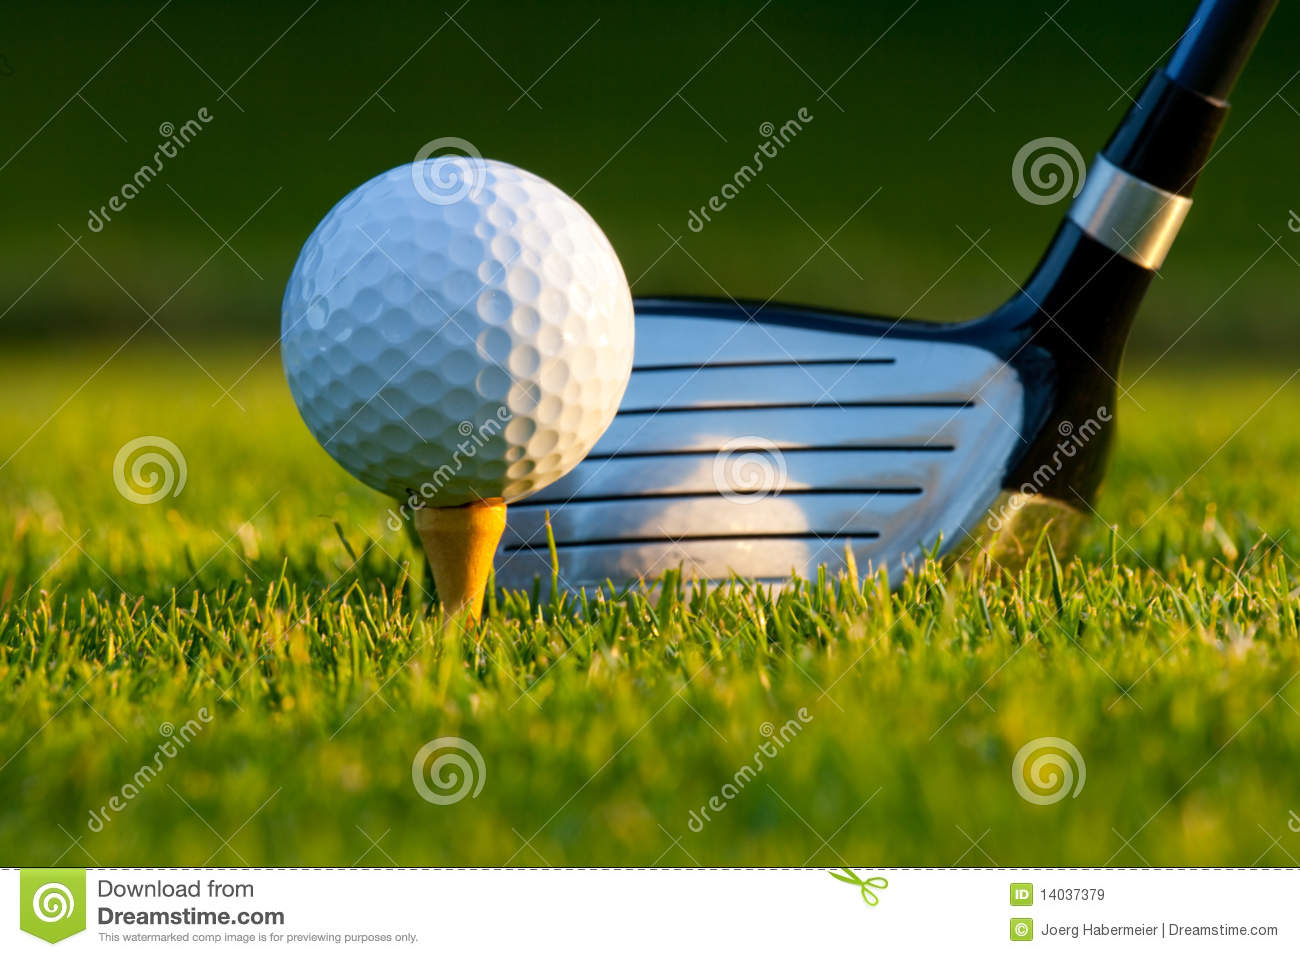 Golf ball and driver on golf course